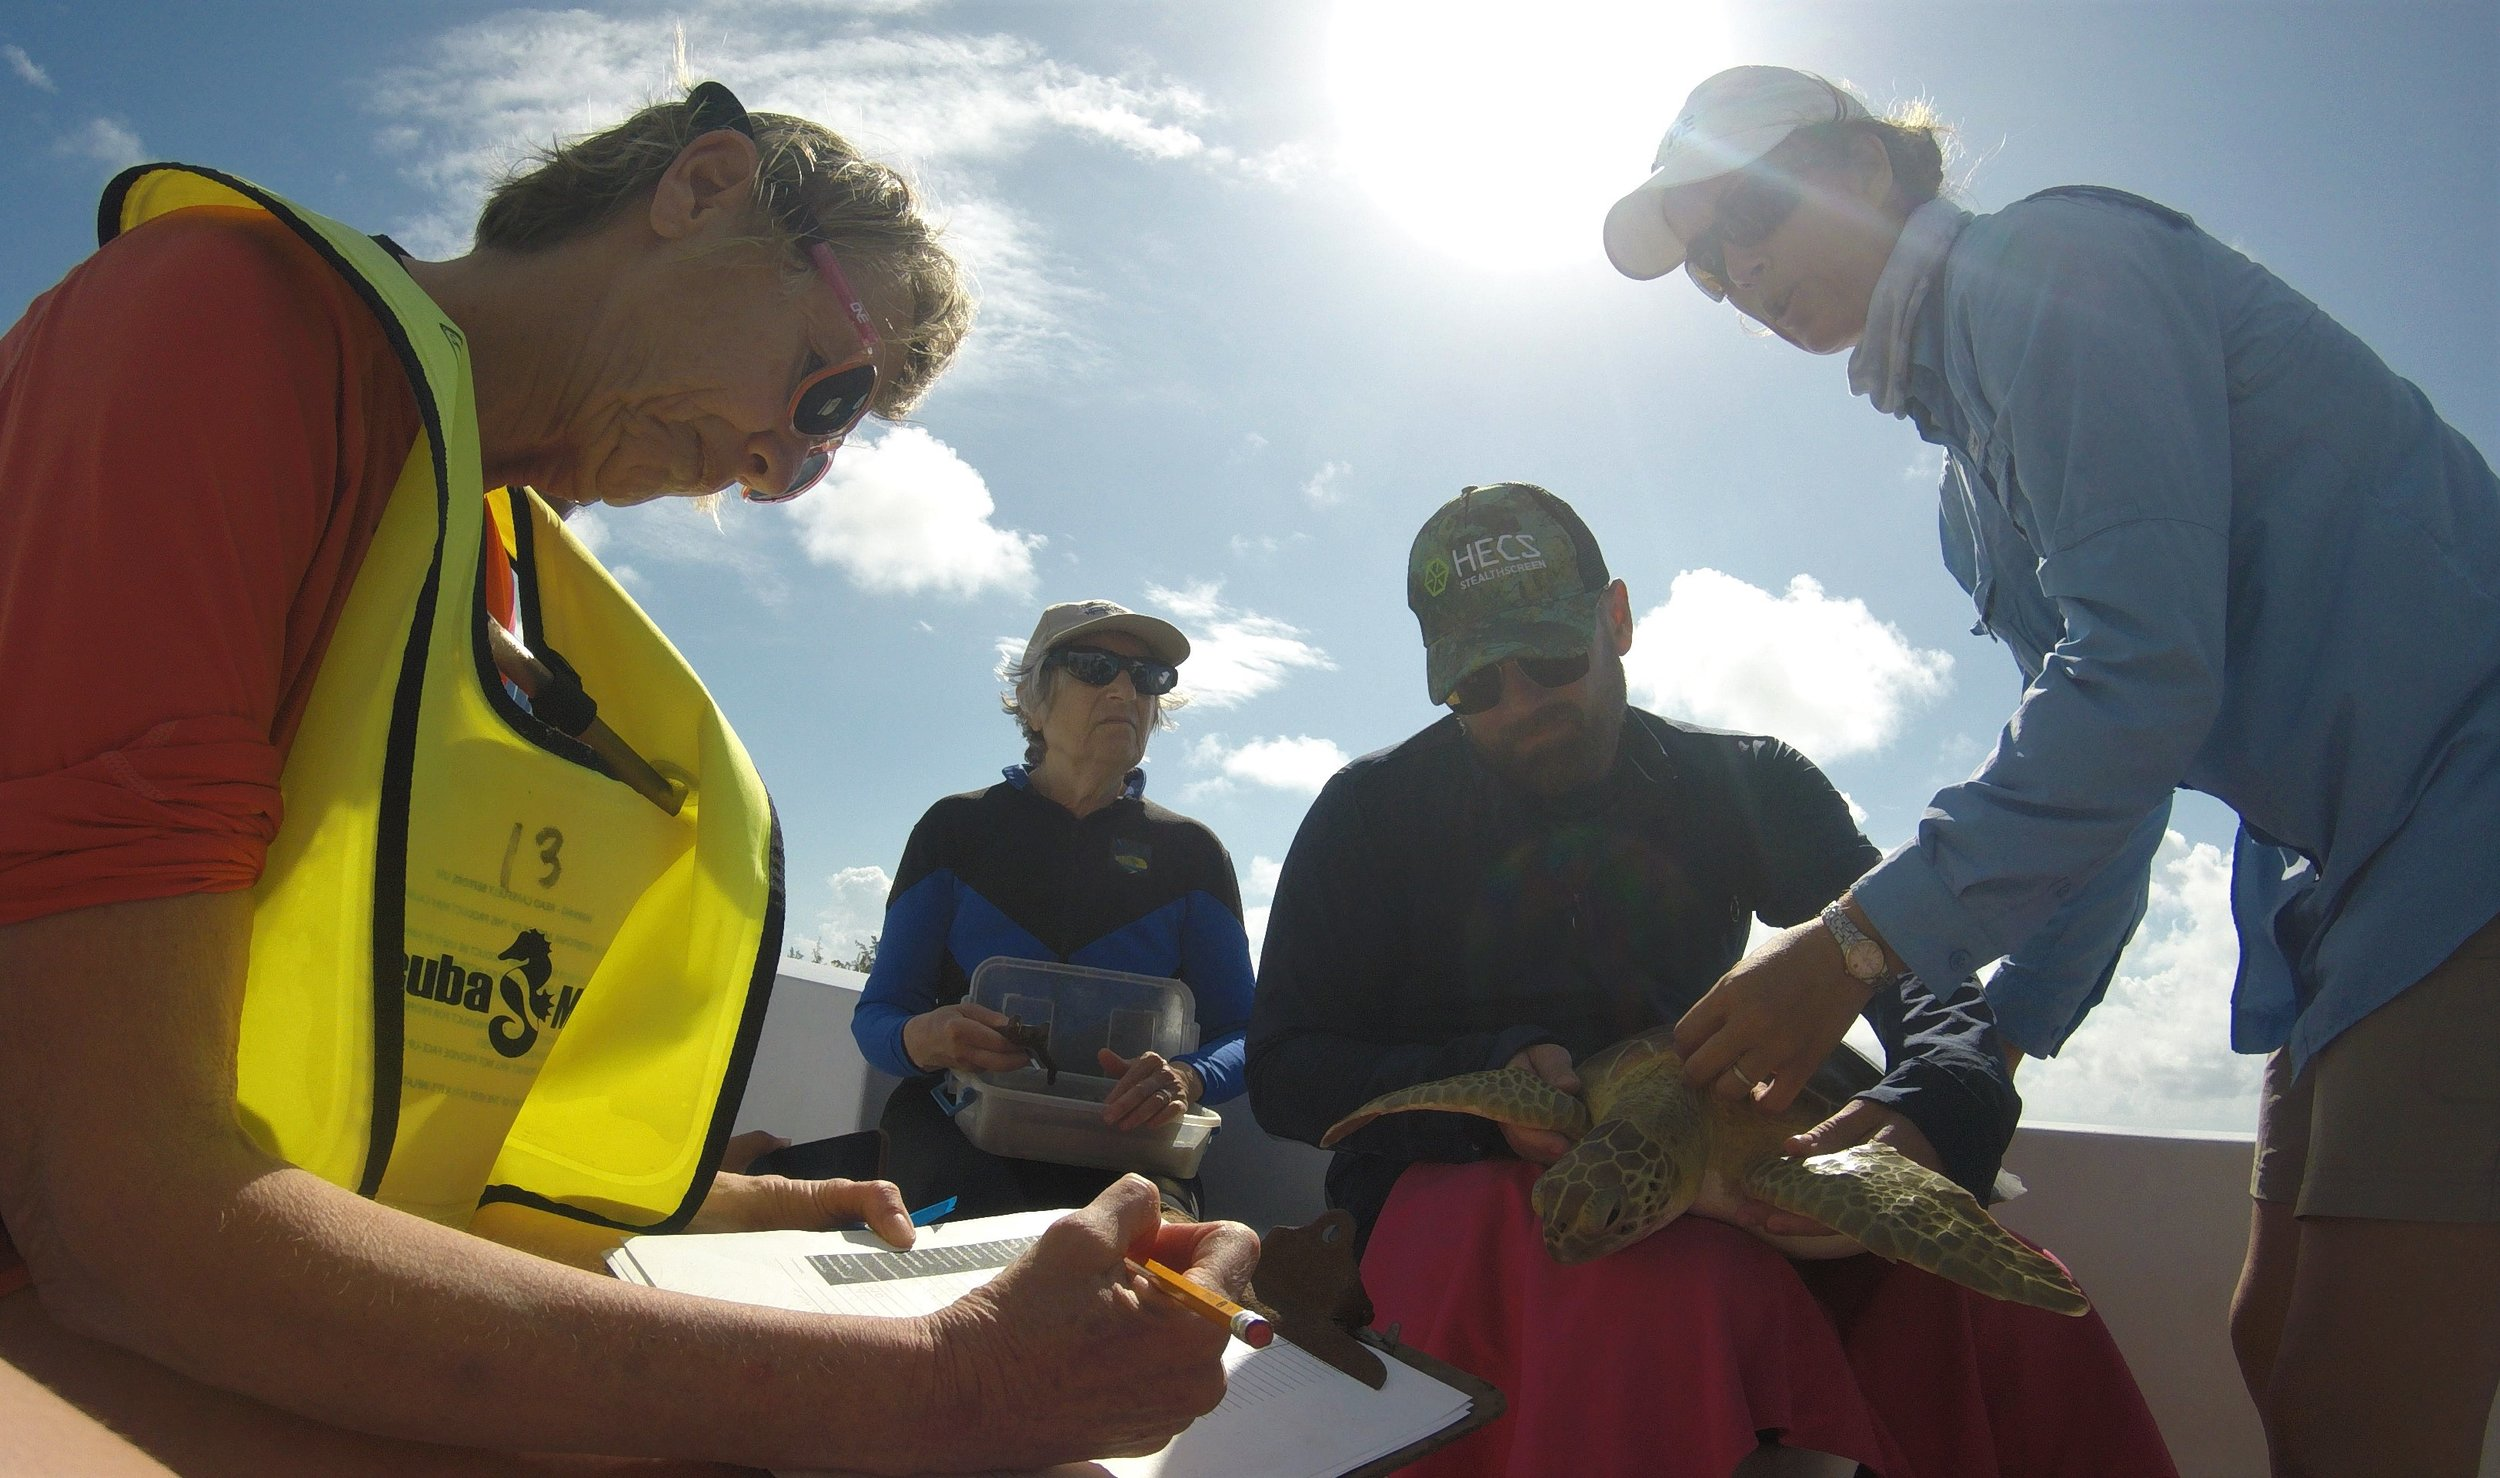 Earthwatch volunteers record biological measurements of a sea turtle they caught from a boat using the 'rodeo' technique.